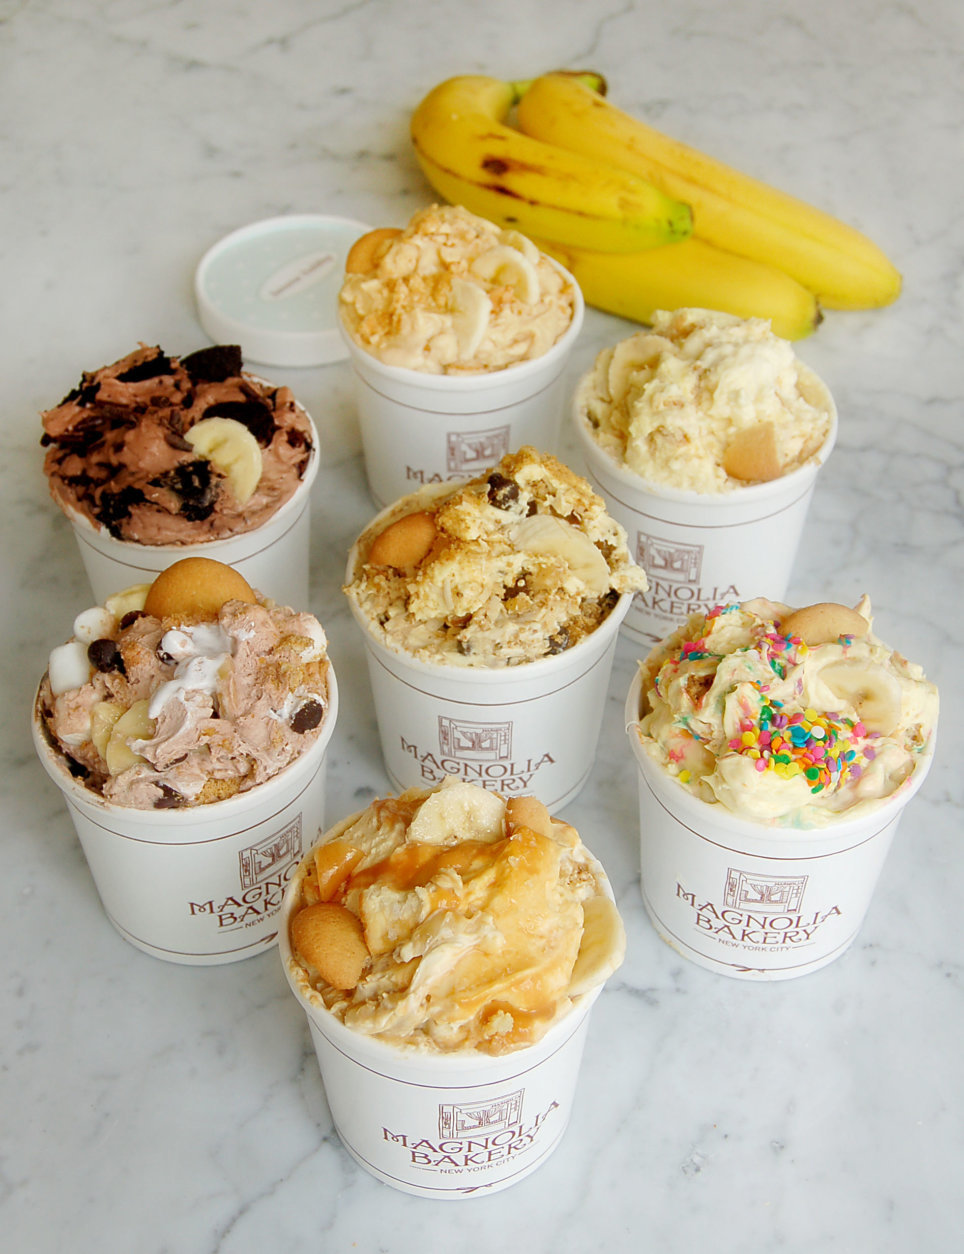 Magnolia Bakery's Union Station store will feature its cupcakes, as well as other customer favorites including banana pudding with vanilla wafer and fresh bananas, red velvet cake, key lime cheesecake and sea salt caramel cookies. (Courtesy Magnolia Bakery)